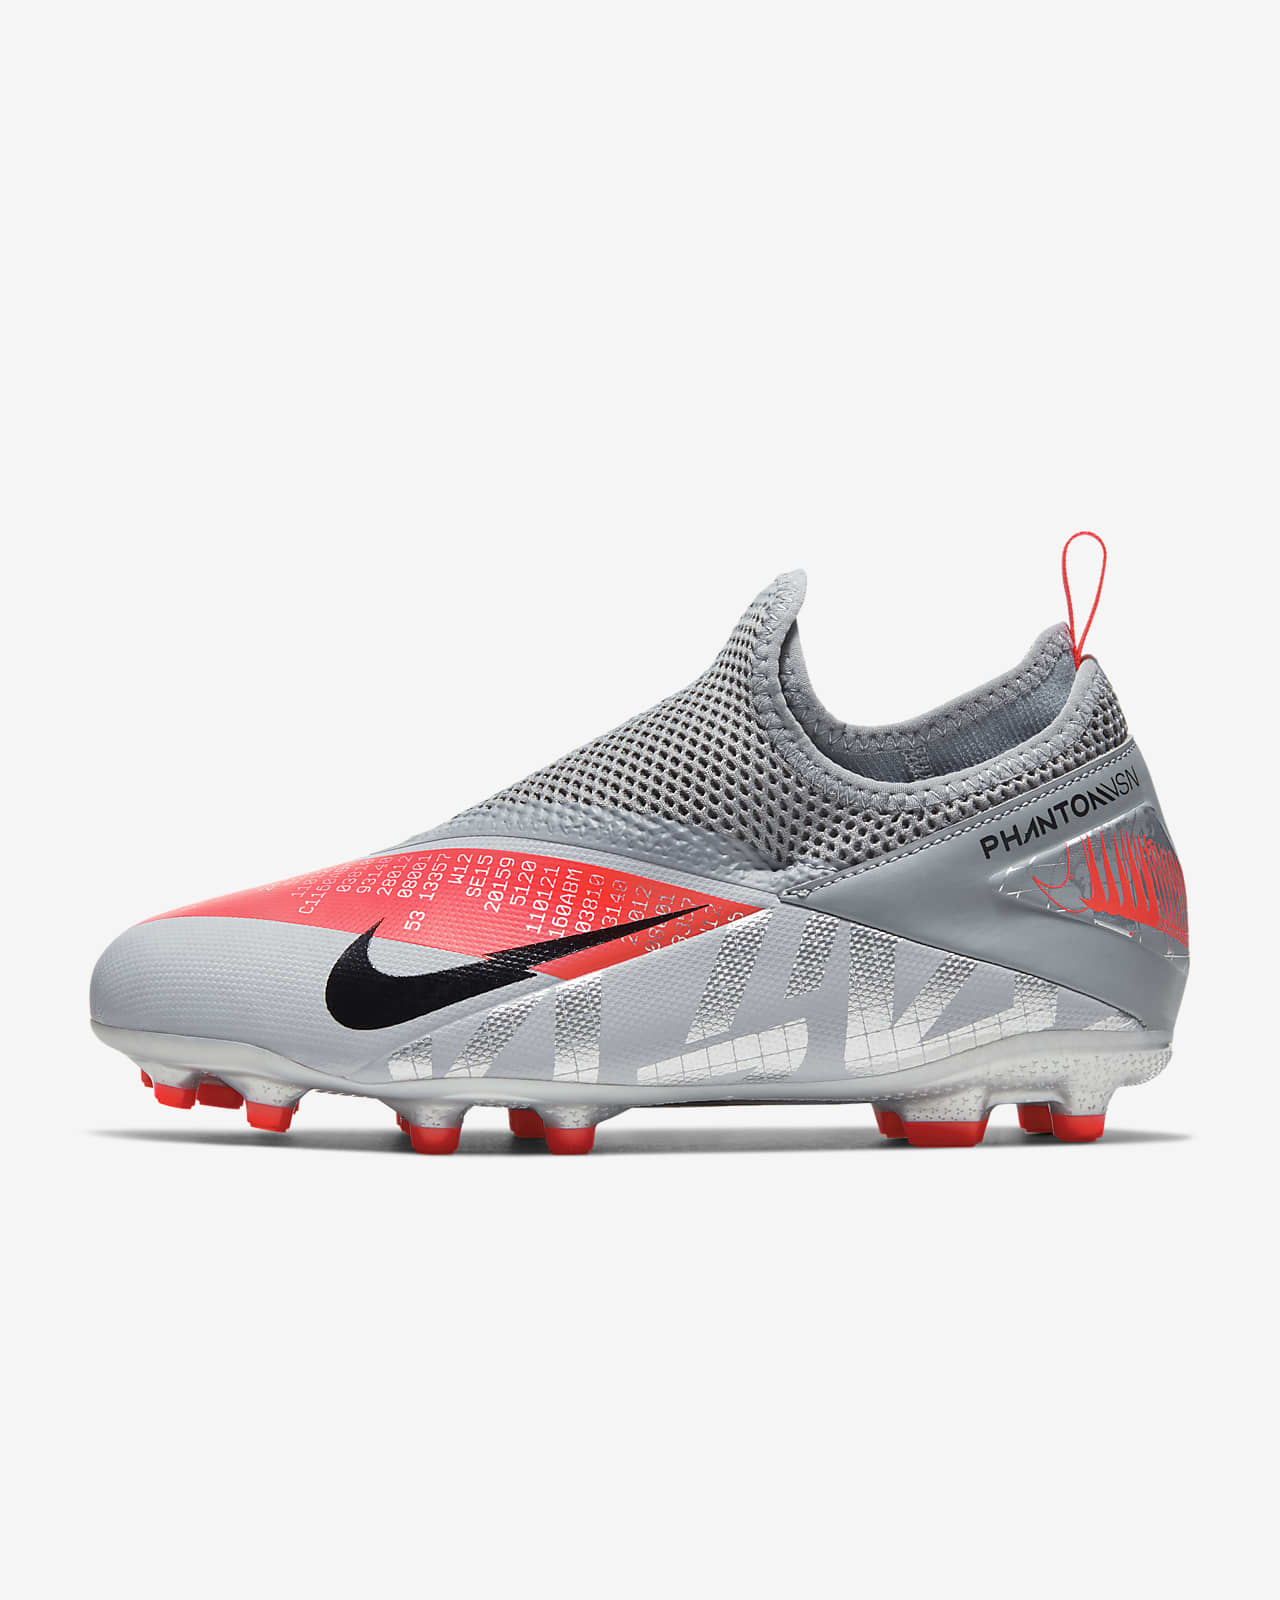 Bienes diversos Será Padre  Nike Jr. Phantom Vision 2 Academy Dynamic Fit MG Little/Big Kids'  Multi-Ground Soccer Cleat. Nike.com